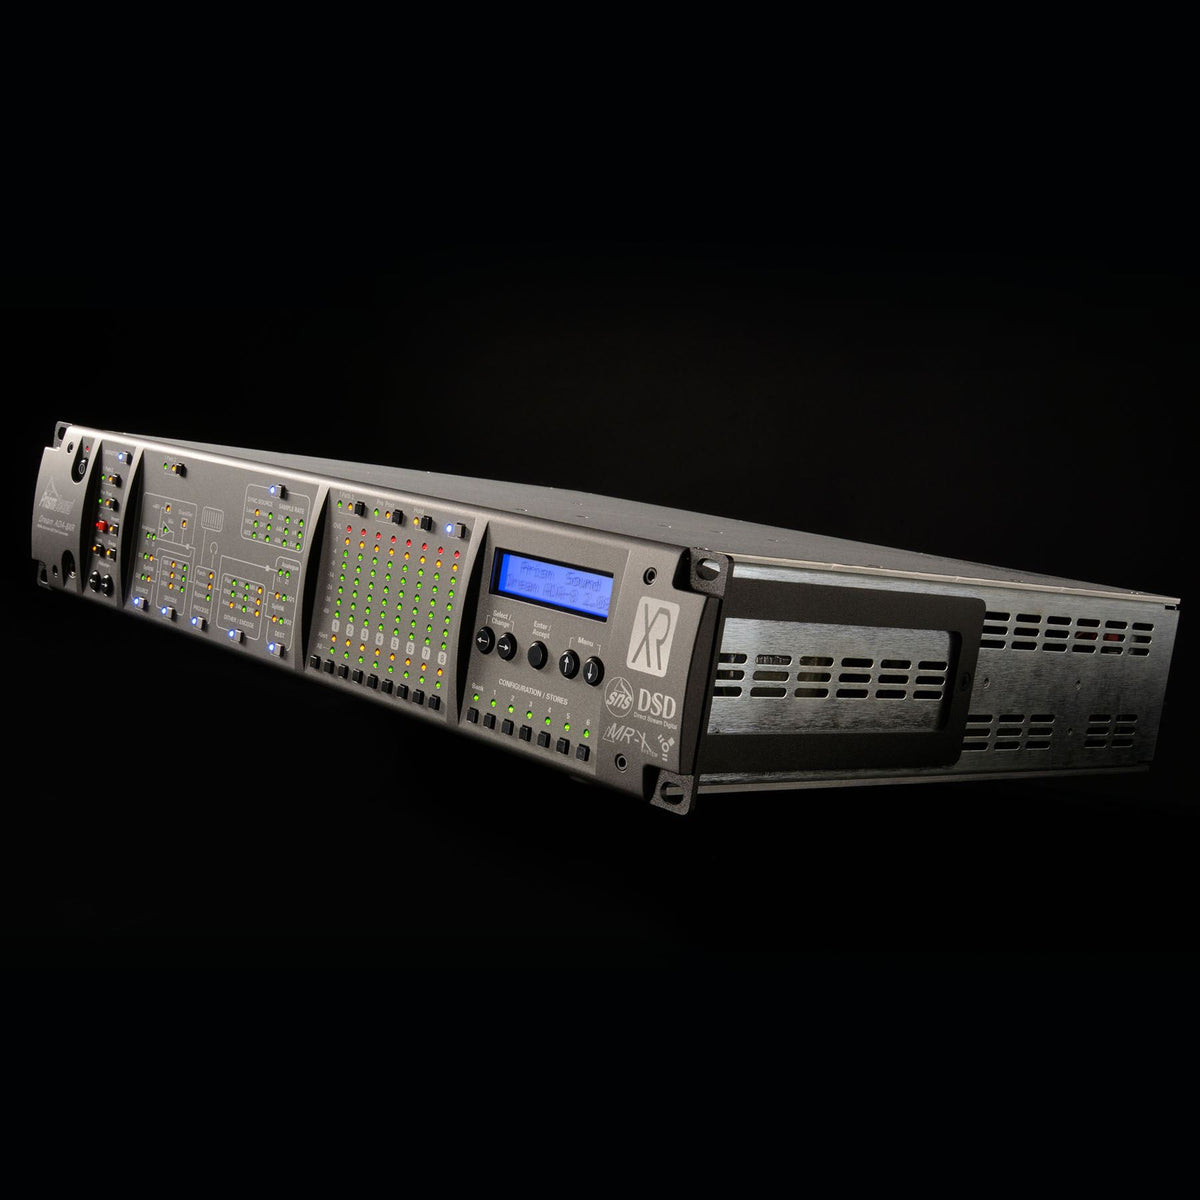 Prism Audio Dream Series ADA-8XR with 16 channels of AD Conversion and AES Digital I/O Card